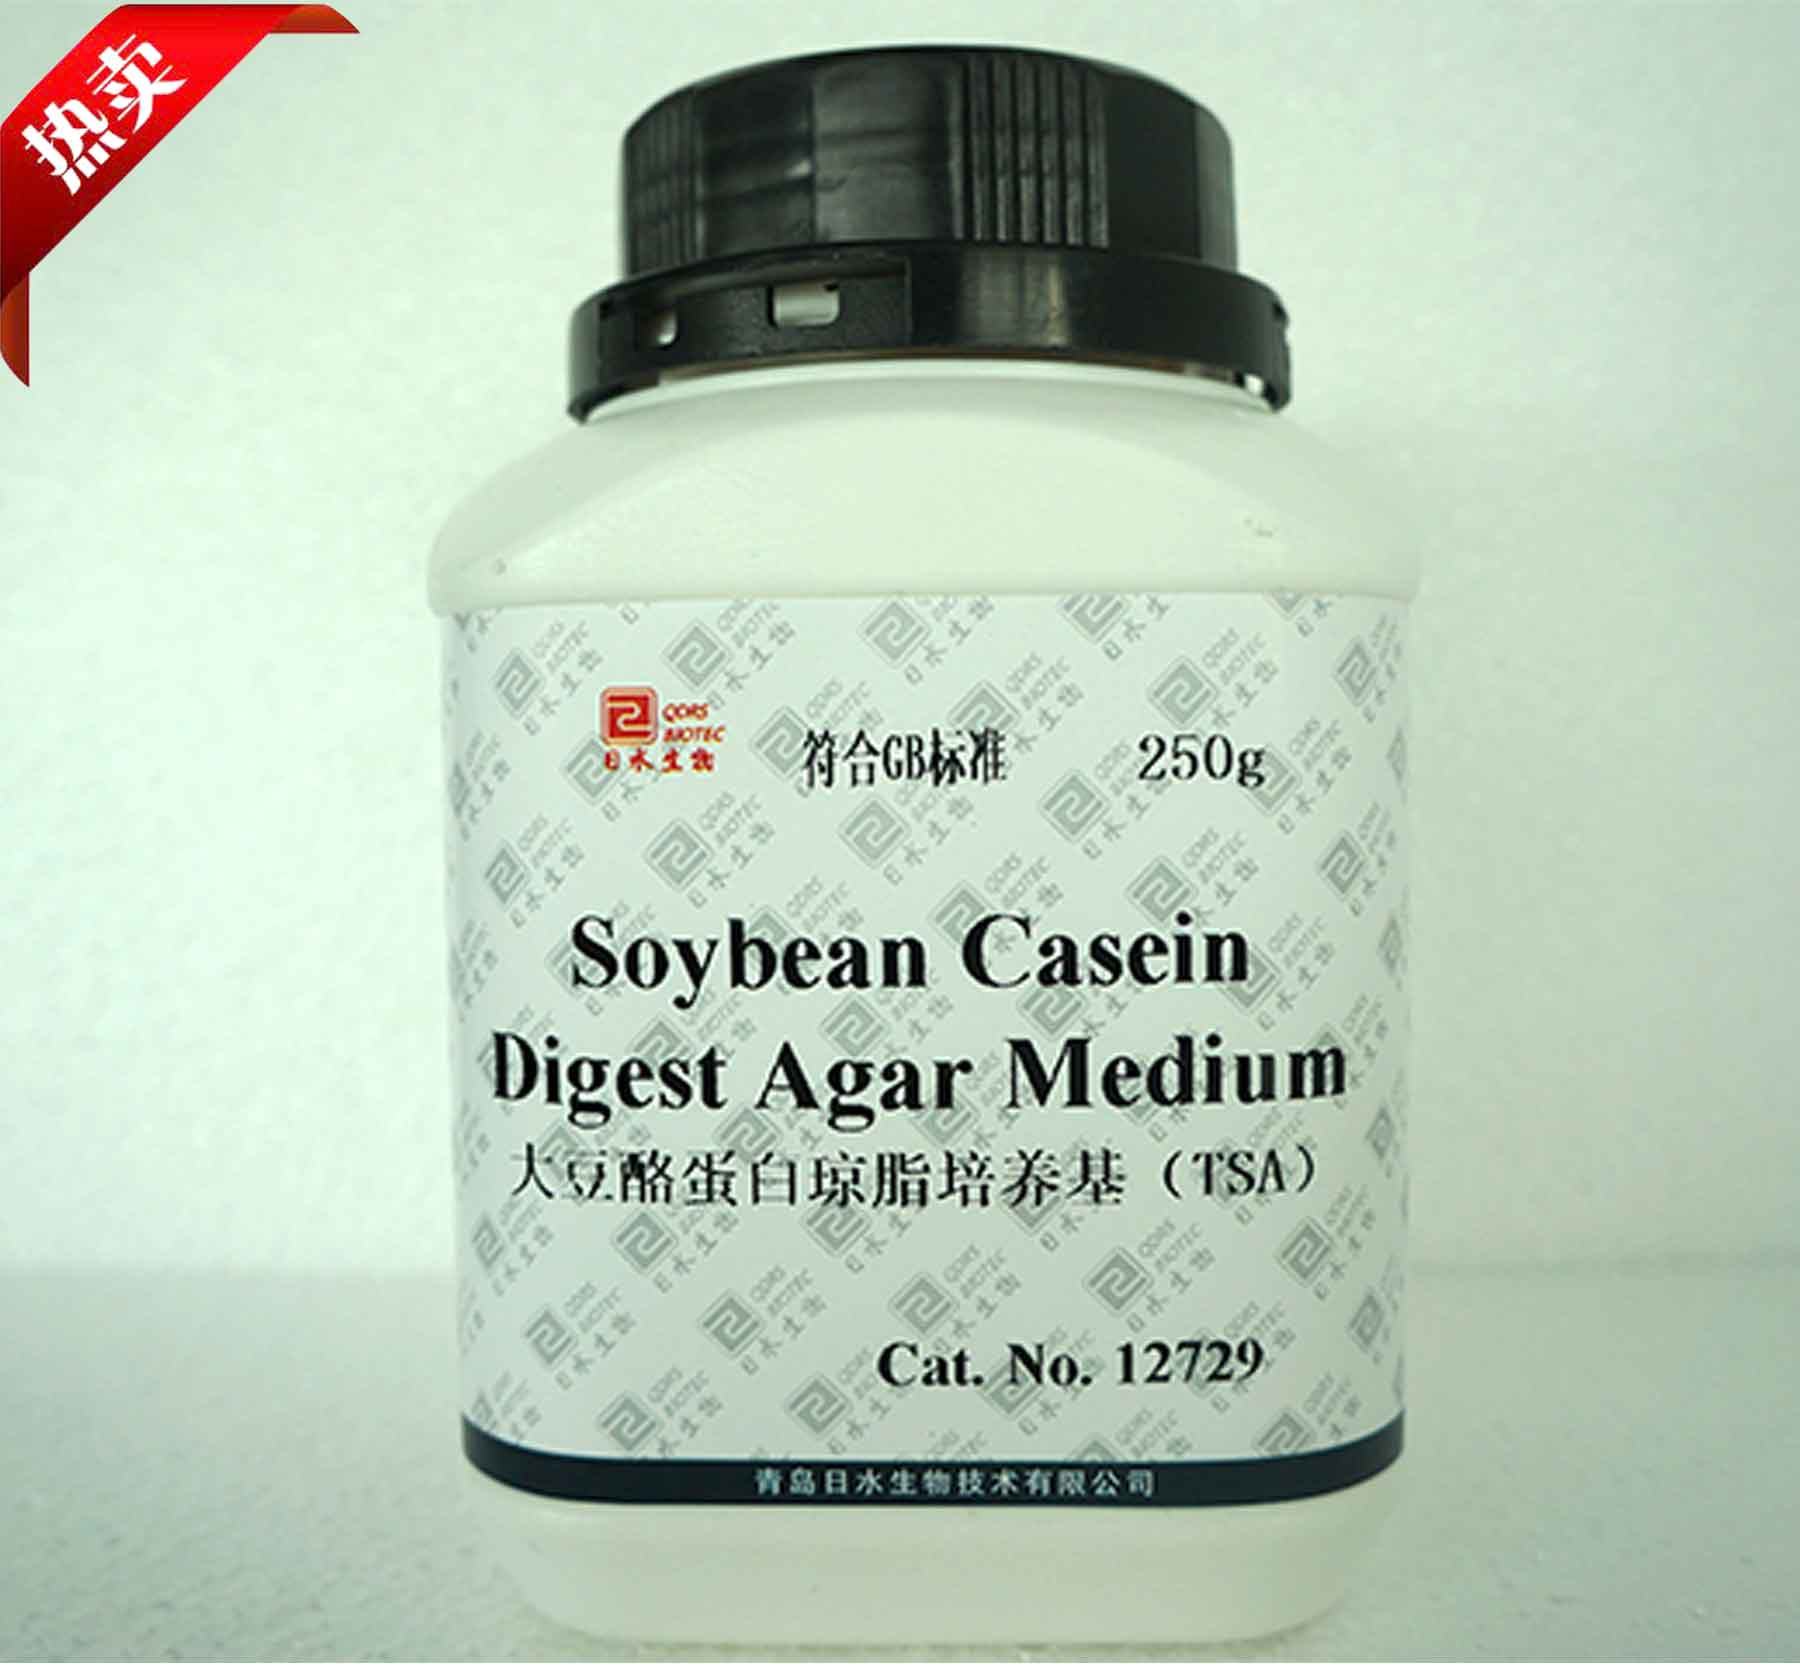 大豆酪蛋白琼脂培养基TSA(Soybean Casein Digest Agar Medium)